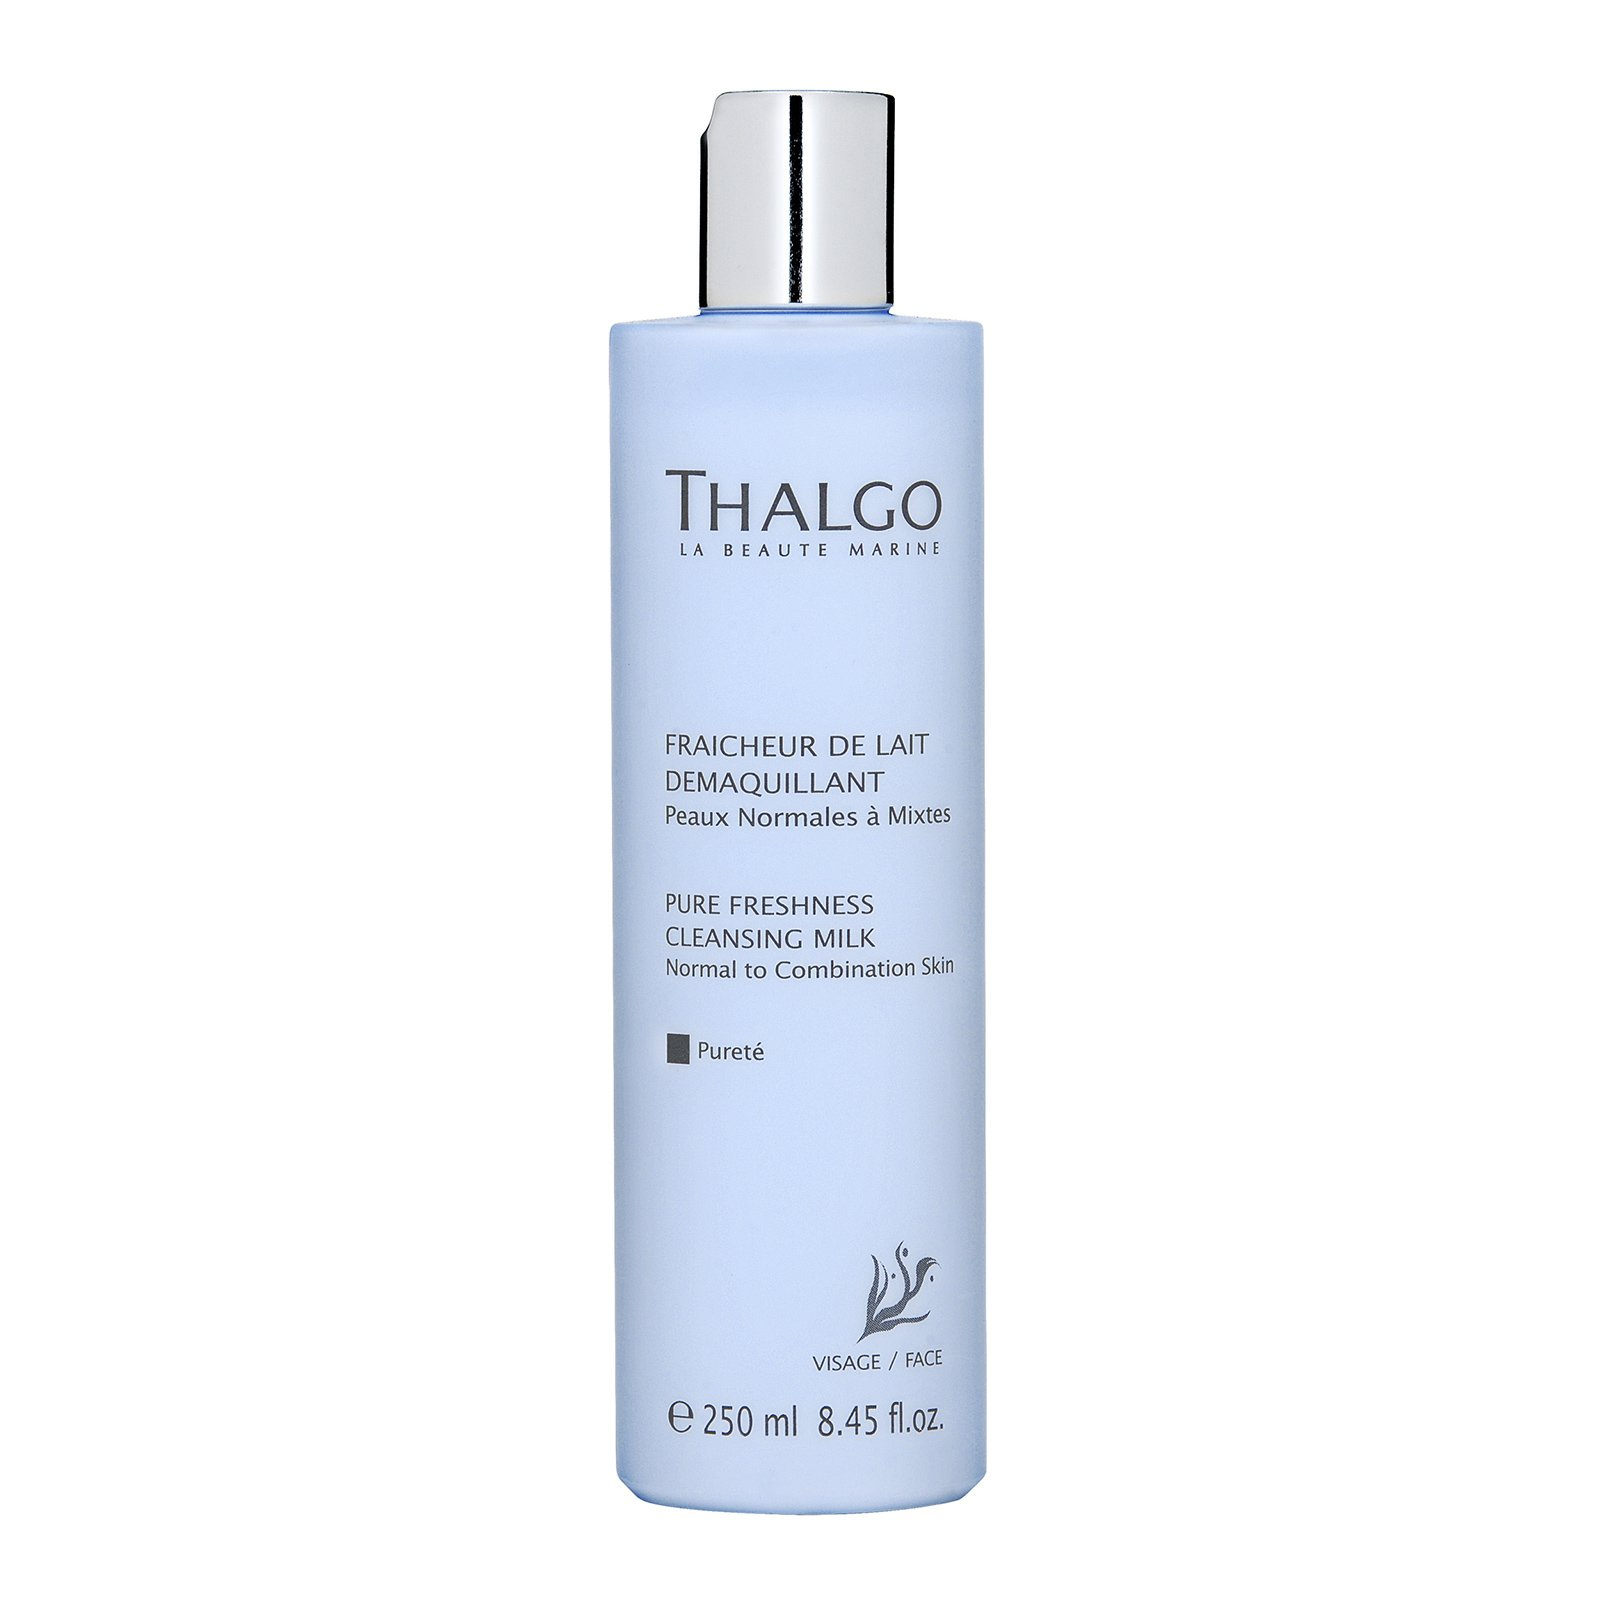 THALGO  Pure Freshness Cleansing Milk (Normal to Combination Skin) 8.45oz, 250ml